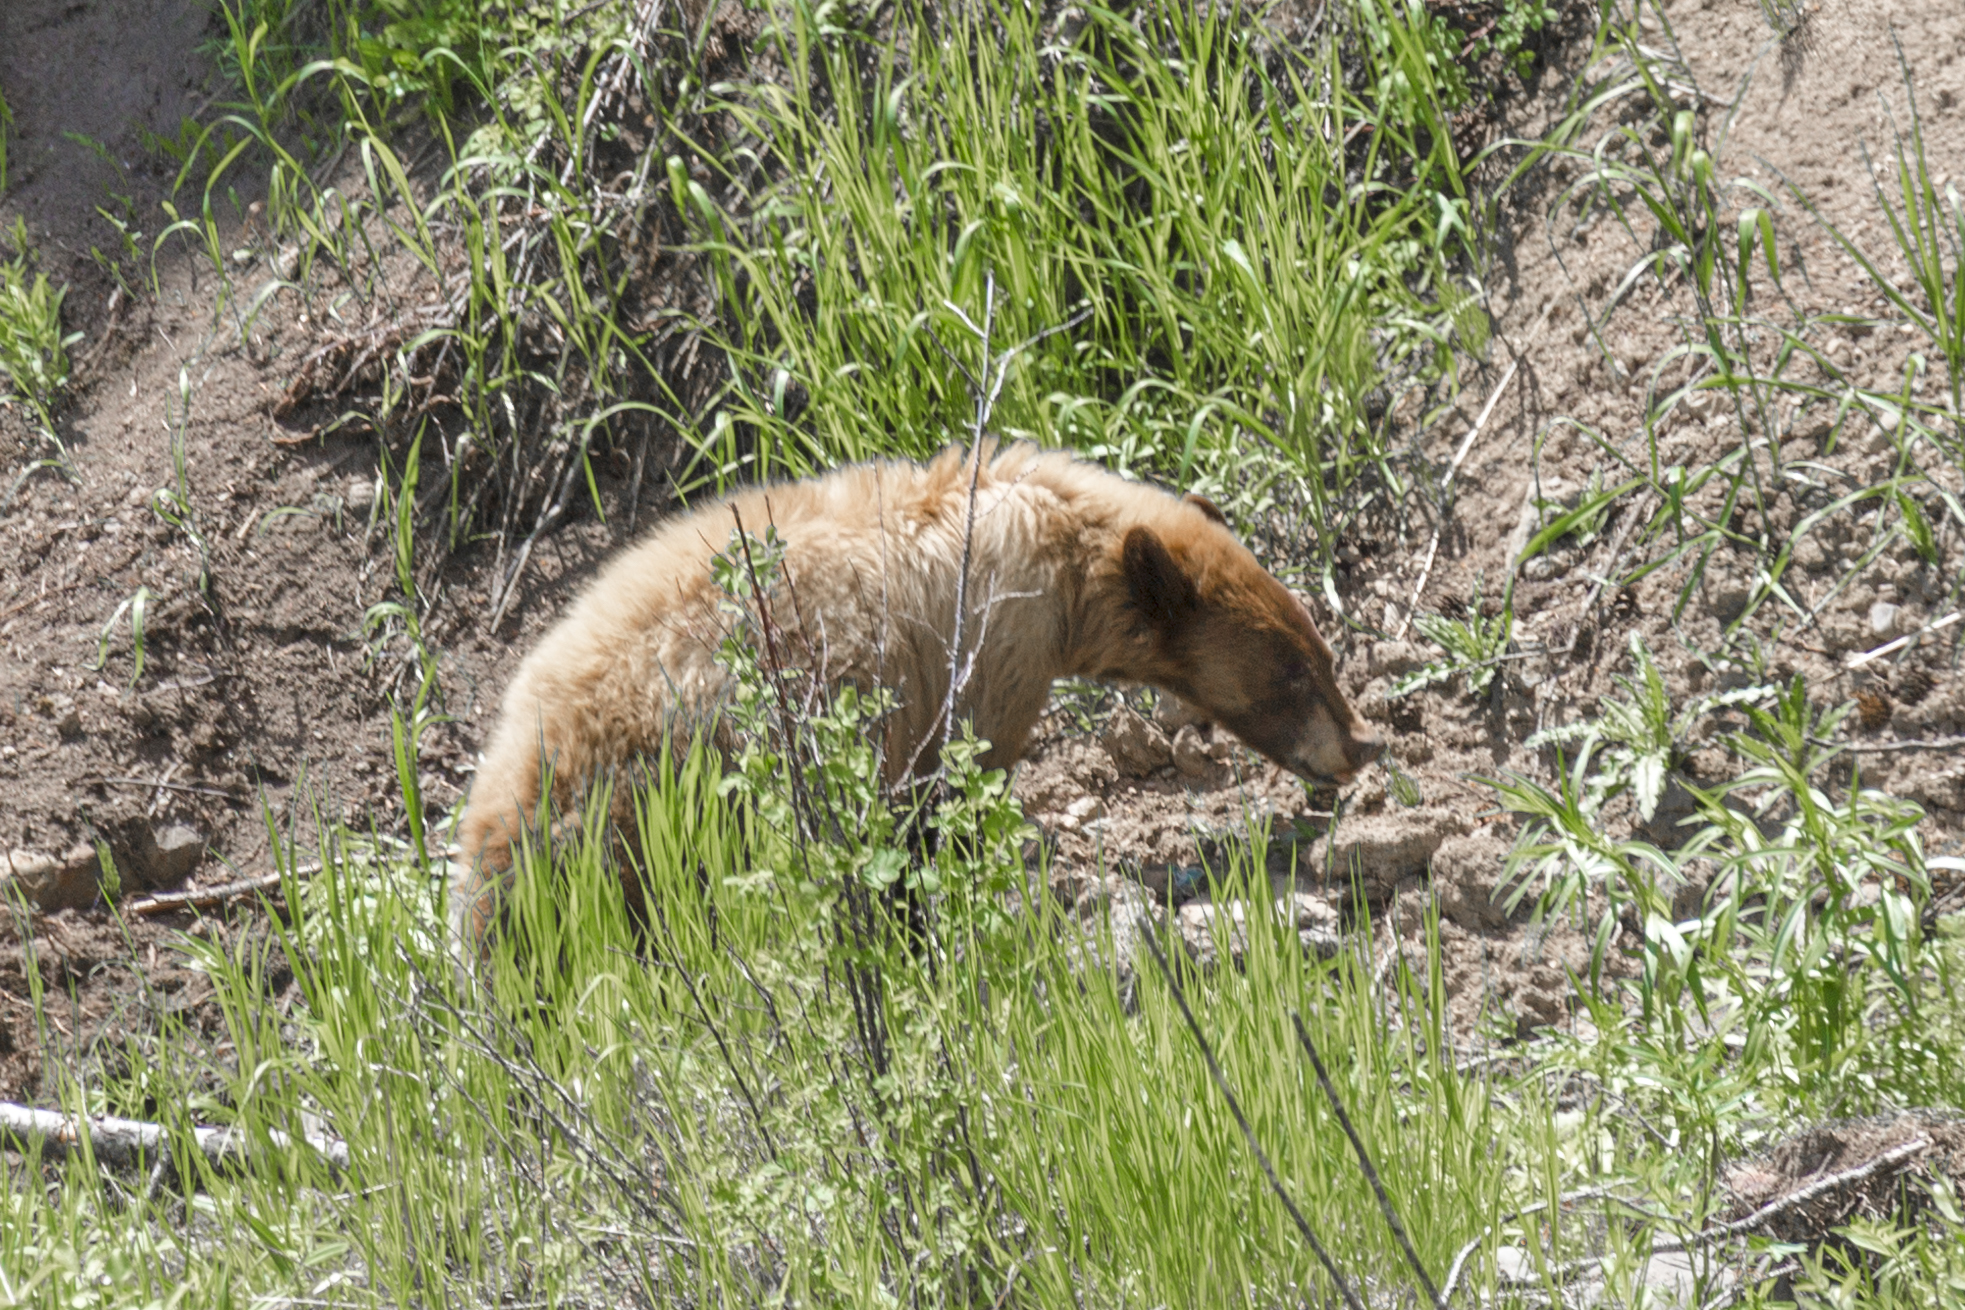 So far we've seen black bears (this is actually a cinnamon black bear) and grizzly bears.